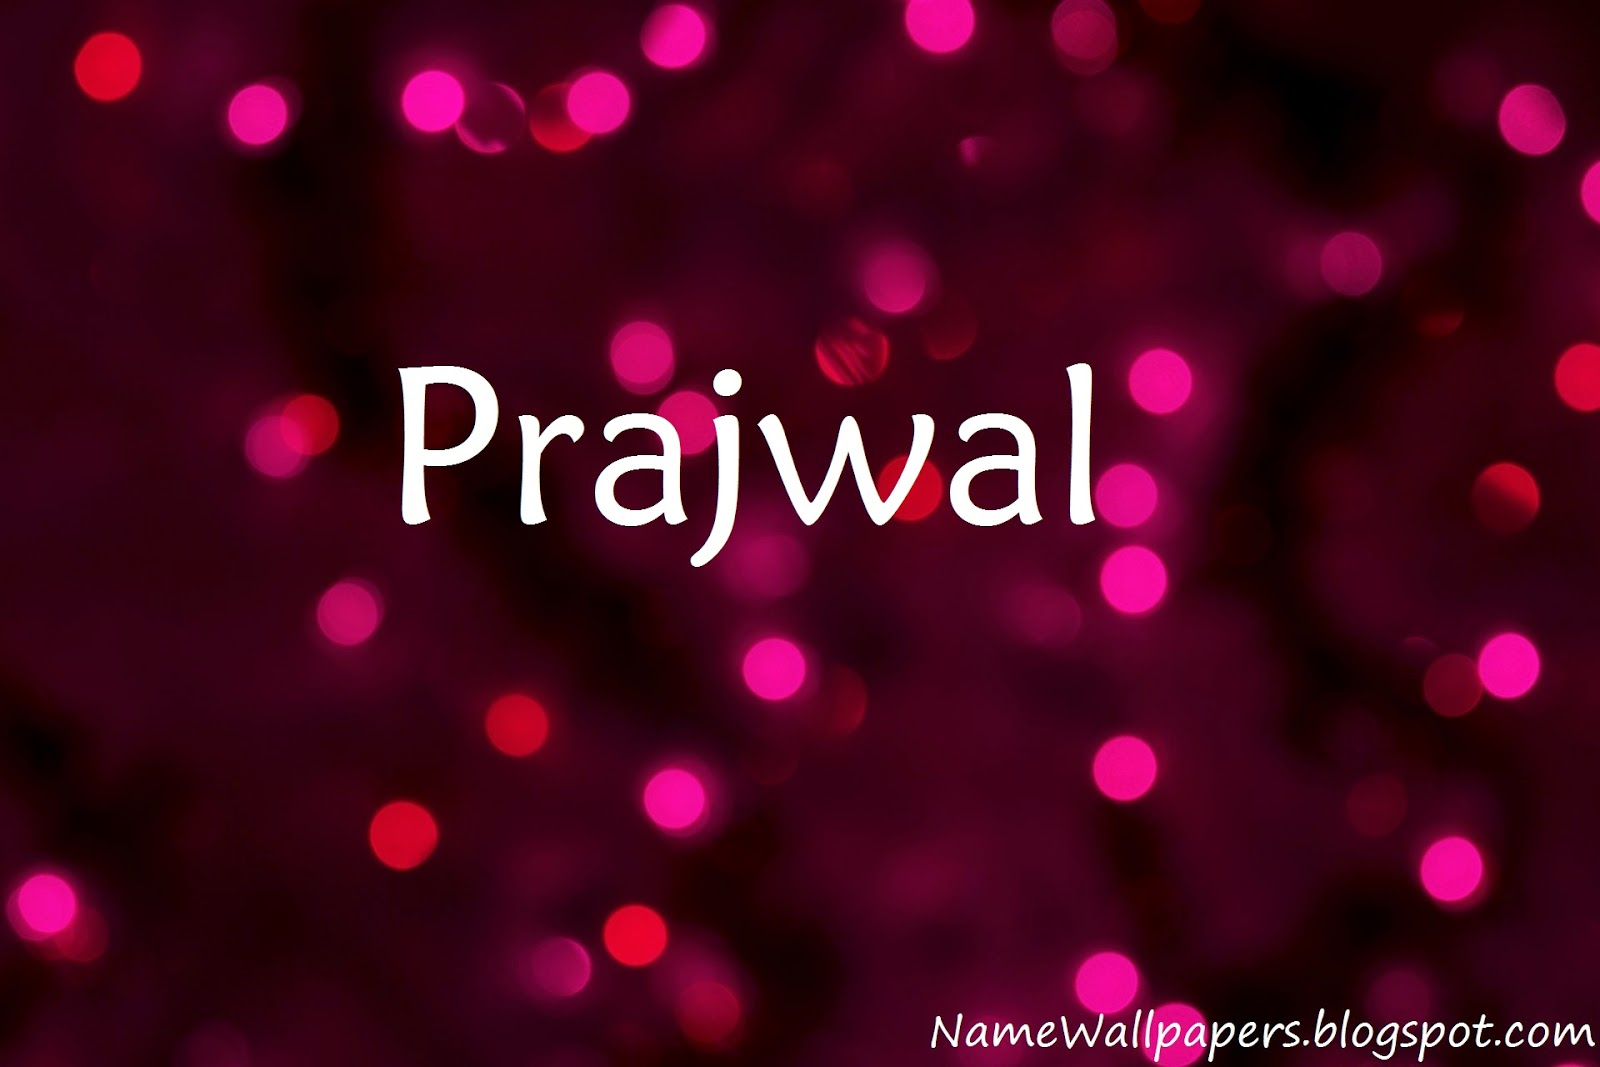 ... Prajwal ~ Name Wallpaper Urdu Name Meaning - 1600x1067 - jpeg